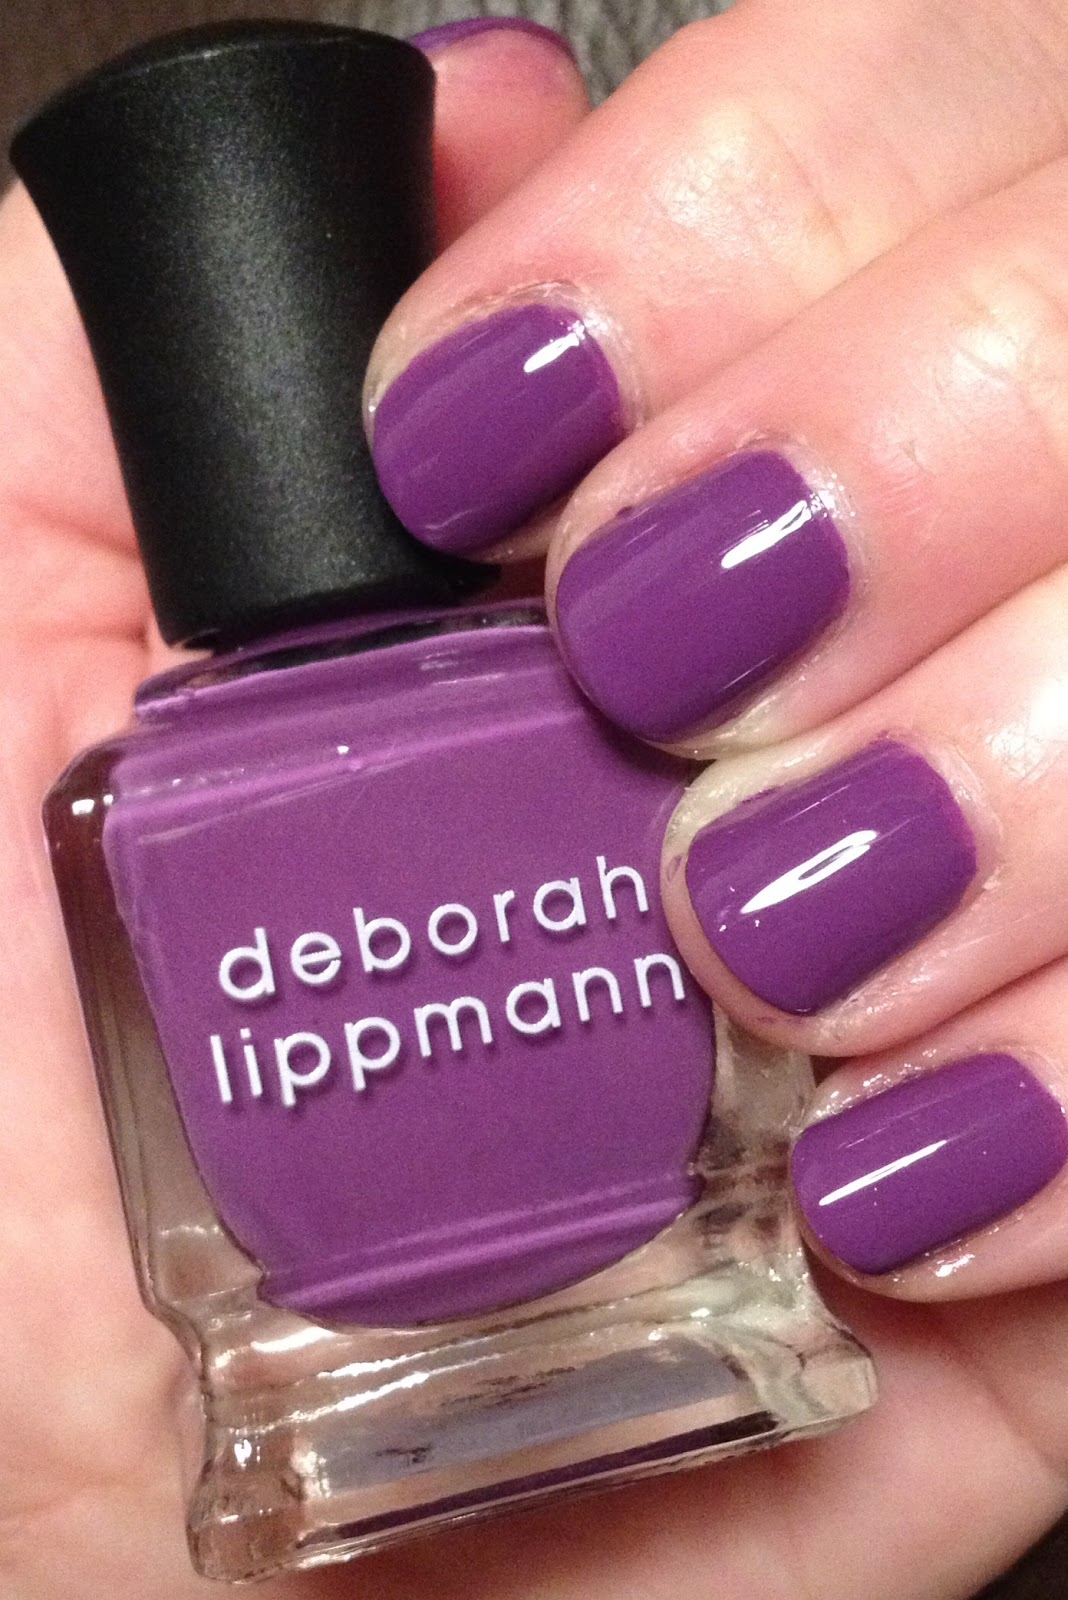 The Beauty of Life: #ManiMonday: Deborah Lippmann Maniac from the ...